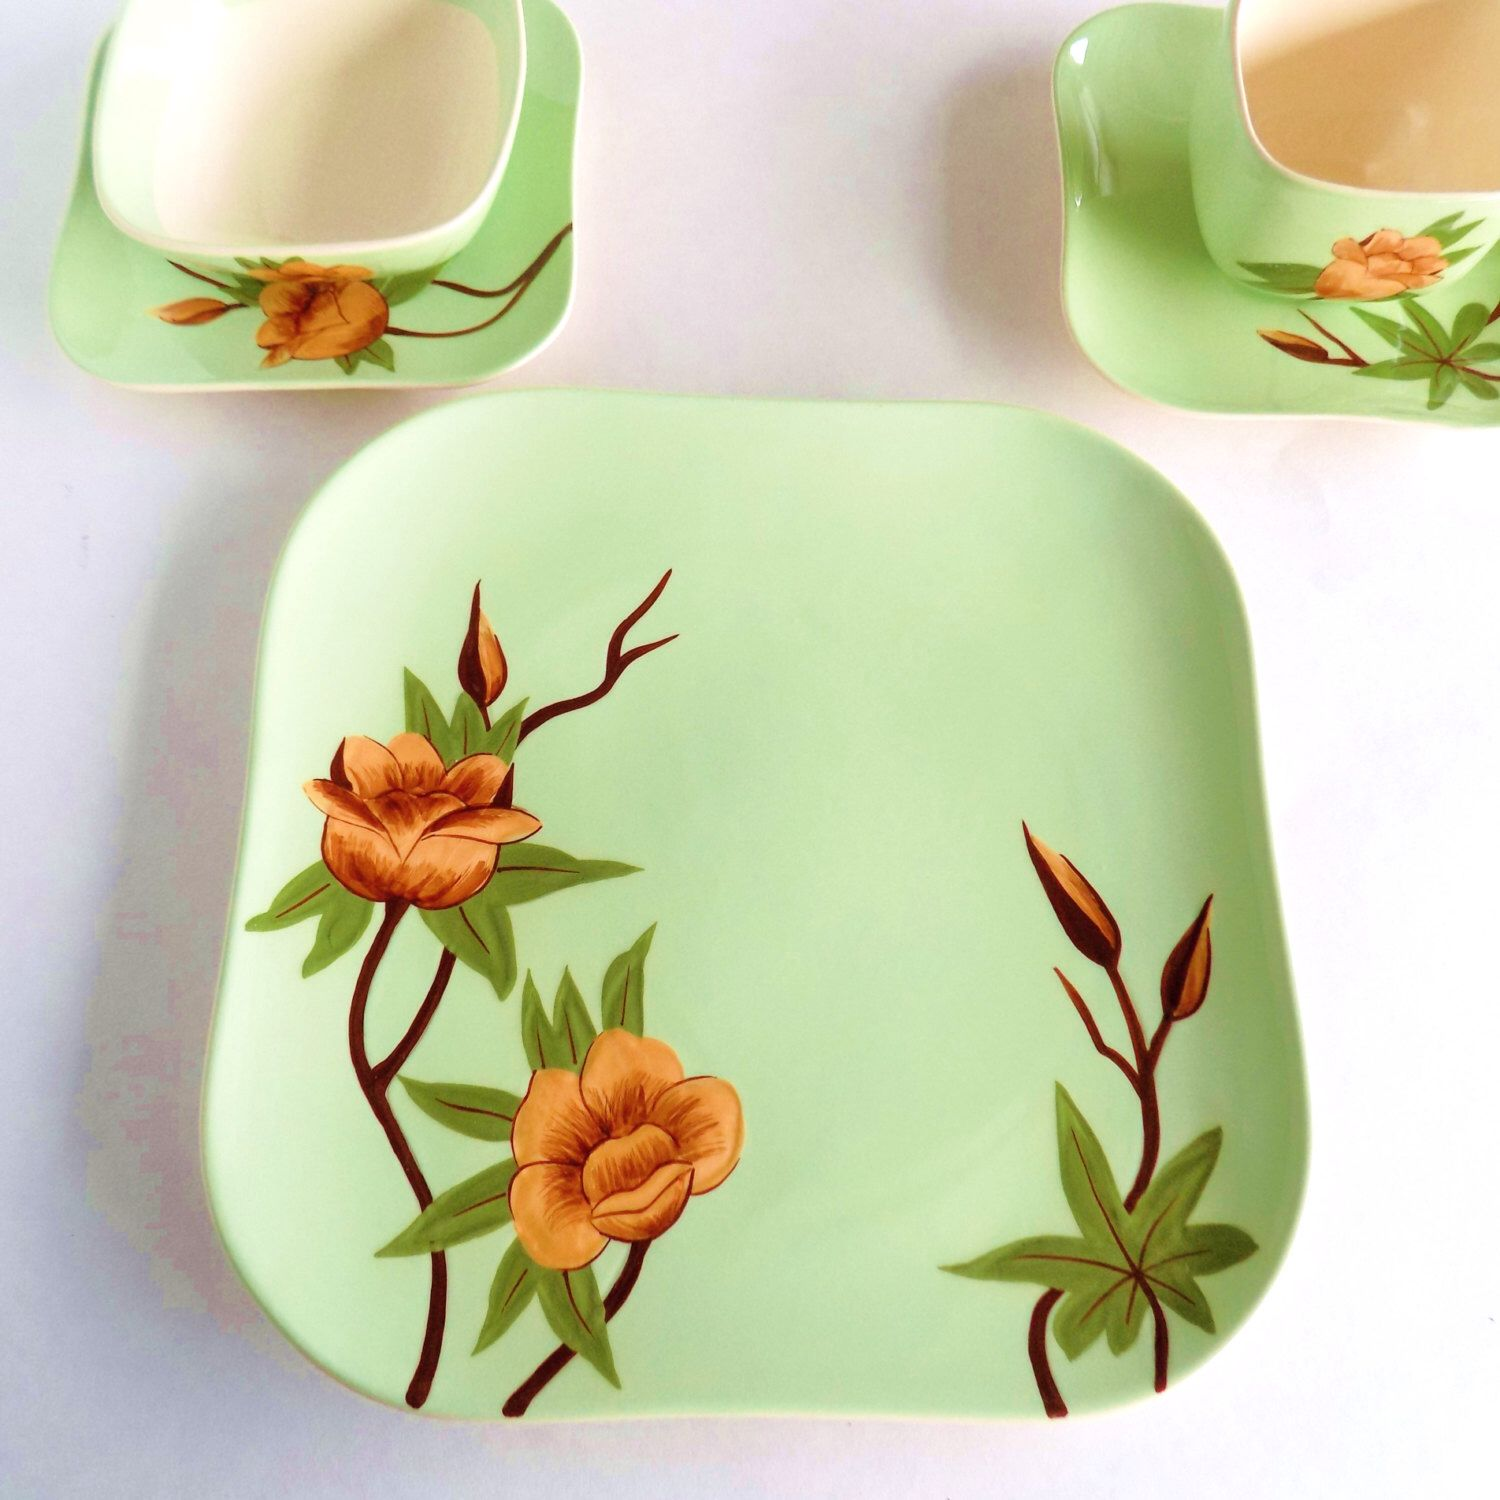 """Rose"" dinnerware pattern on green background, c. 1950 by"